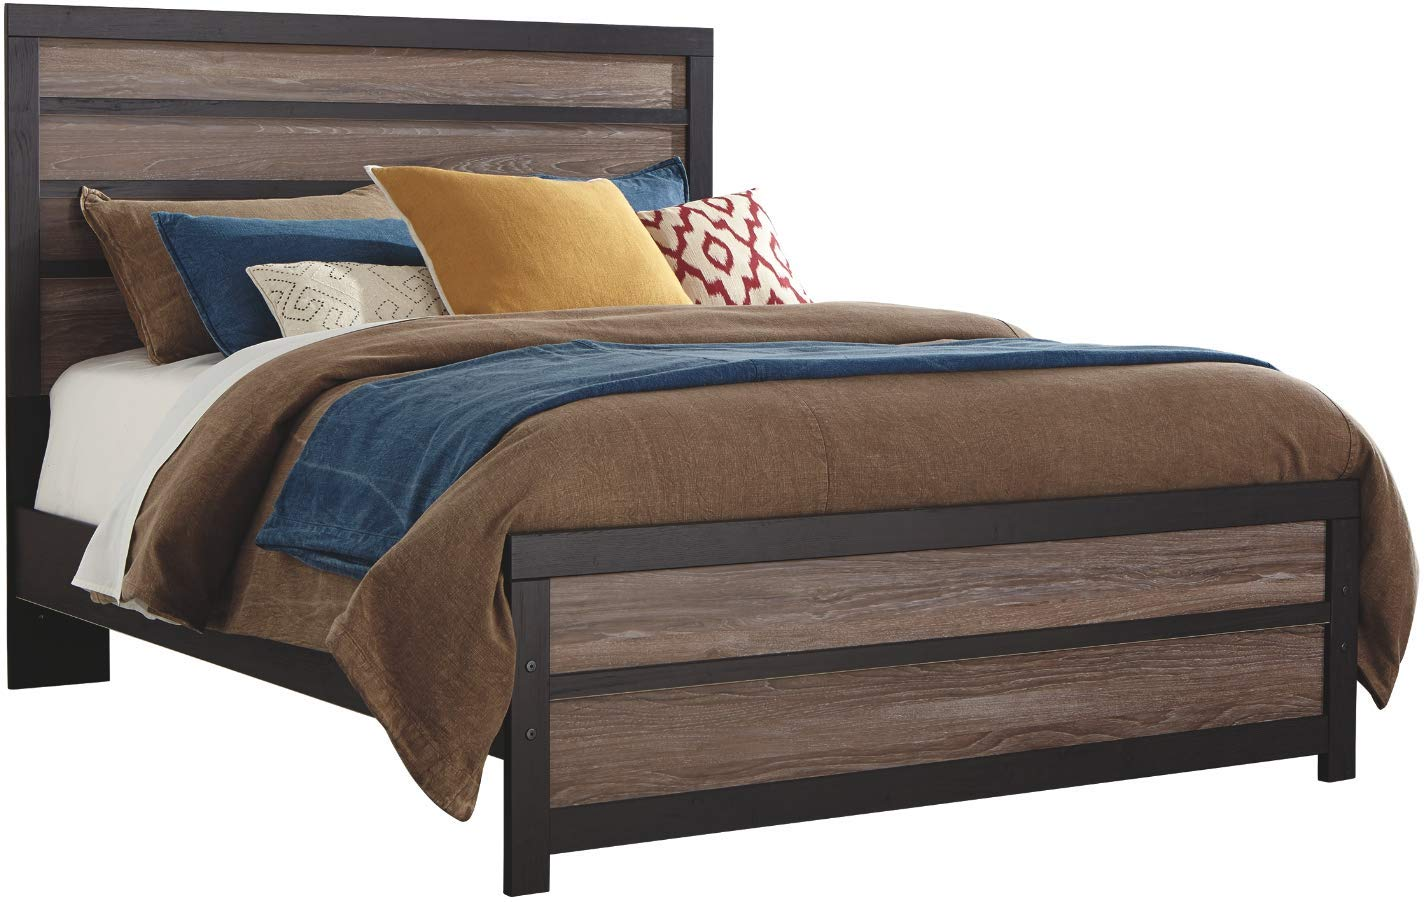 Ashley Furniture Signature Design - Harlinton Queen Panel Footboard - Component Piece - Warm Gray/Charcoal